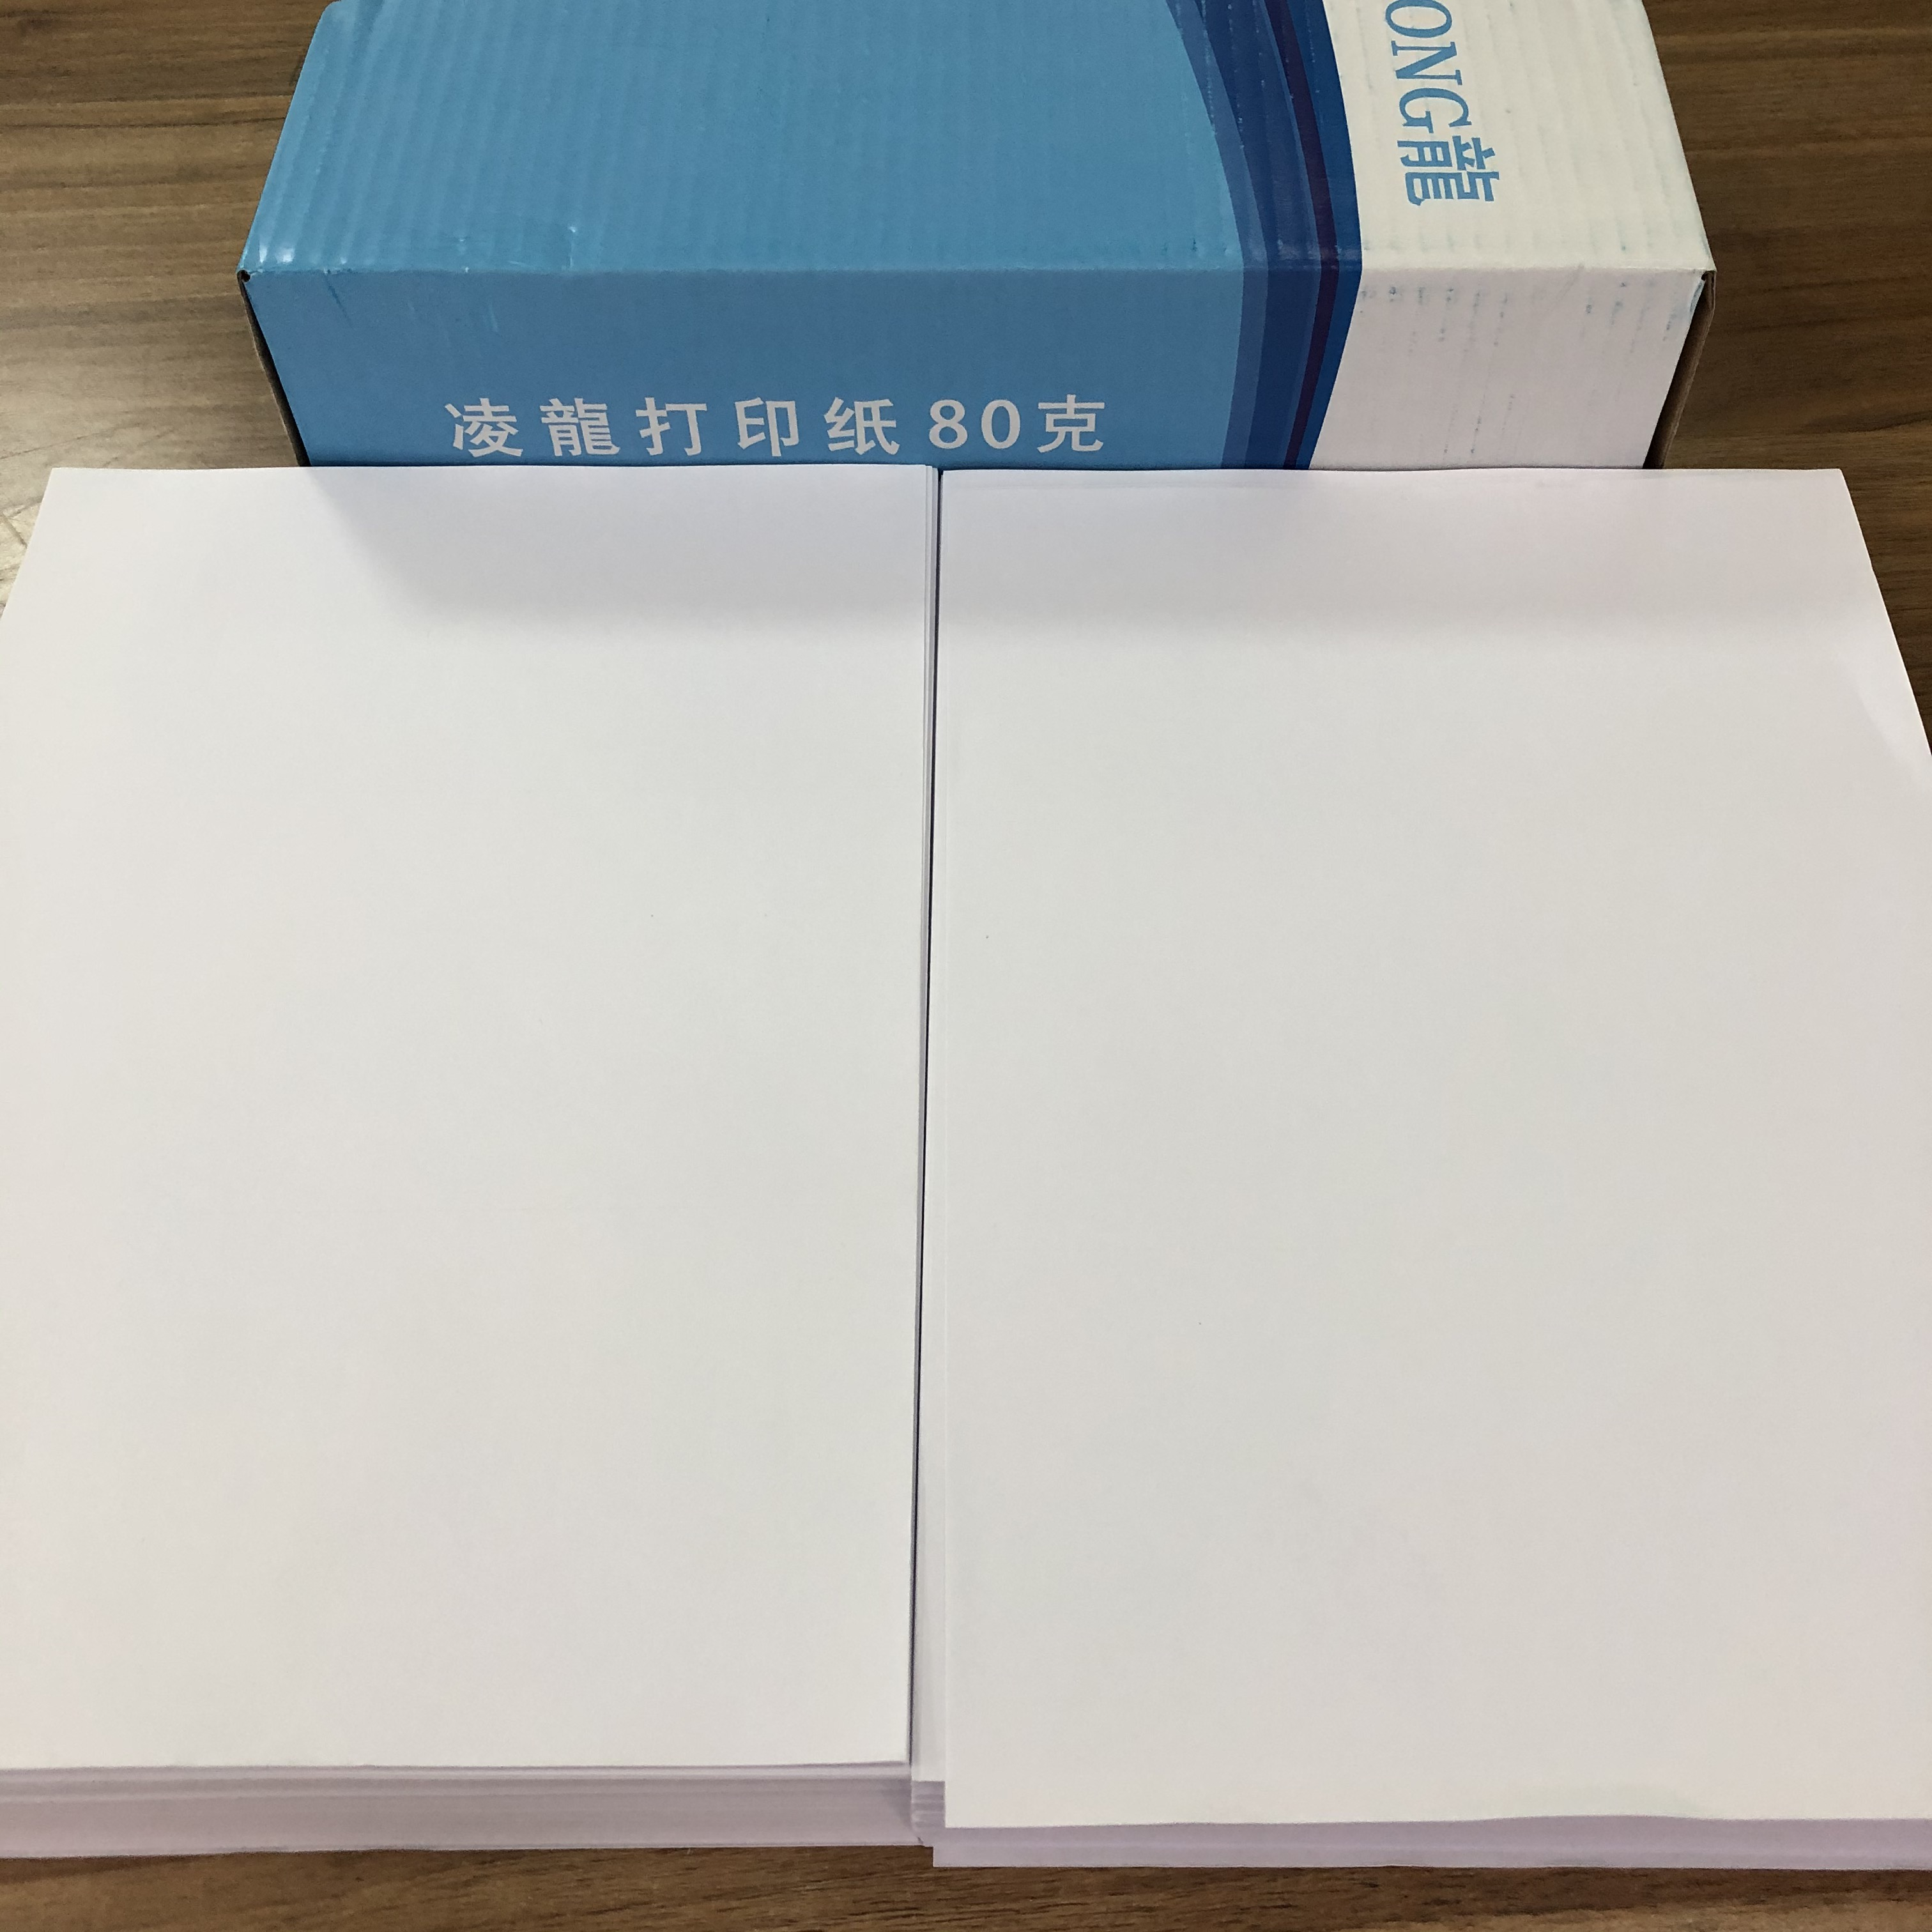 High quality double A4 copy paper for office bisector paper convenience